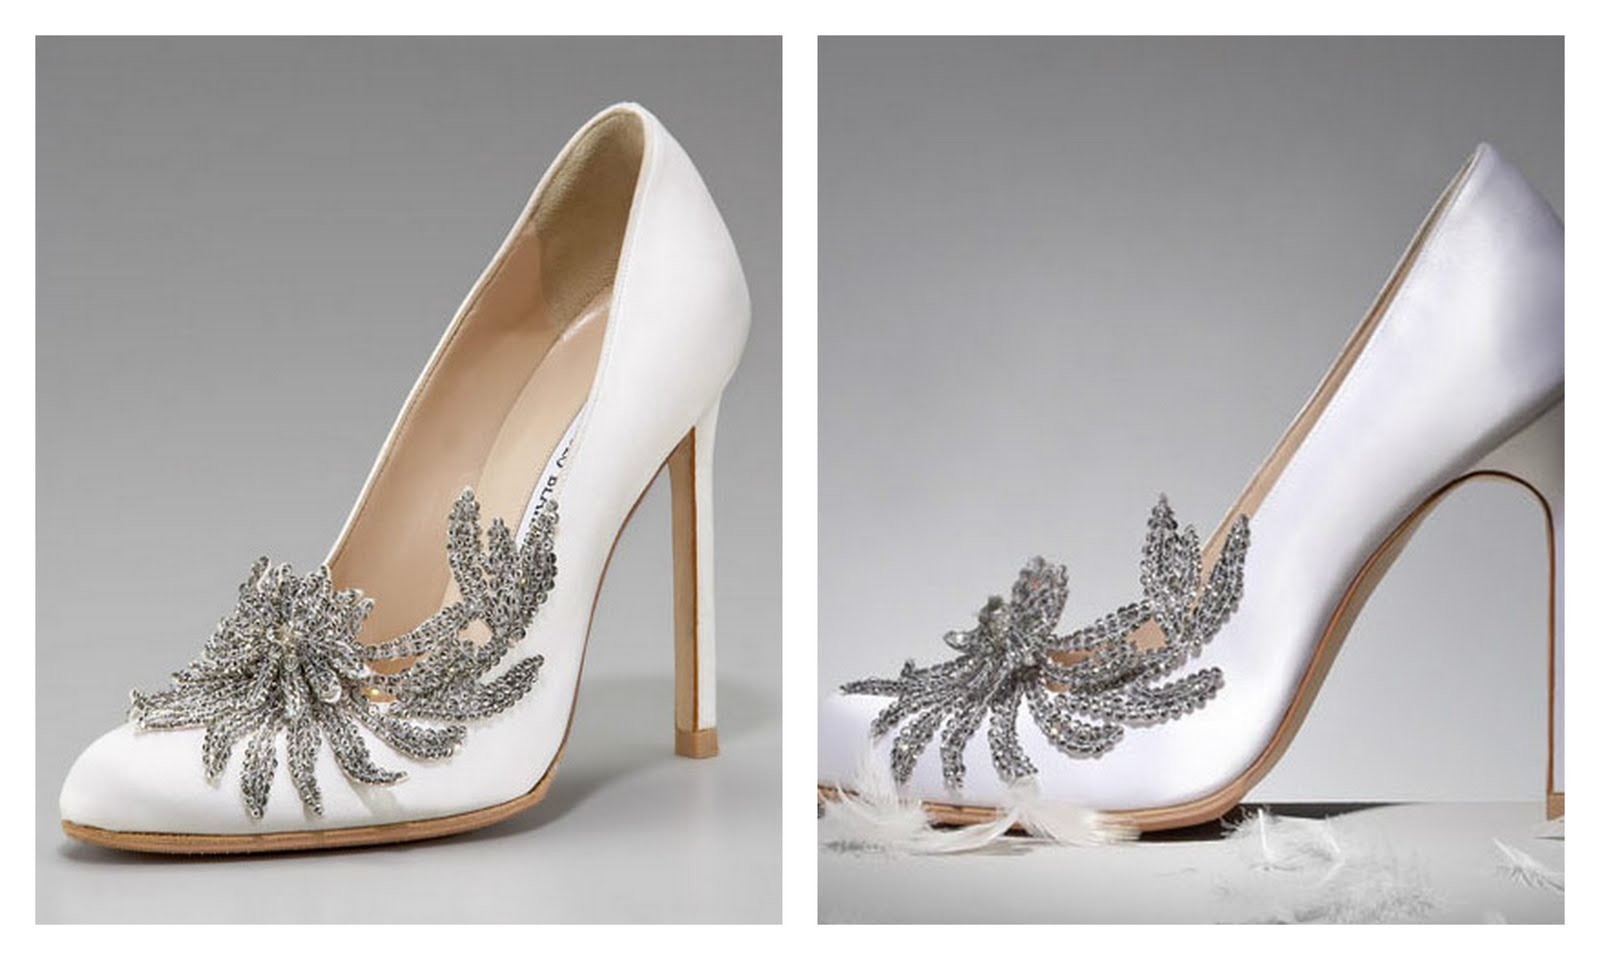 Neiman Marcus ; Bella Twilight White Pumps Bridal Shoes, Manolo Blahnik,  Crystal Embellished Vamp Stiletto High Heel